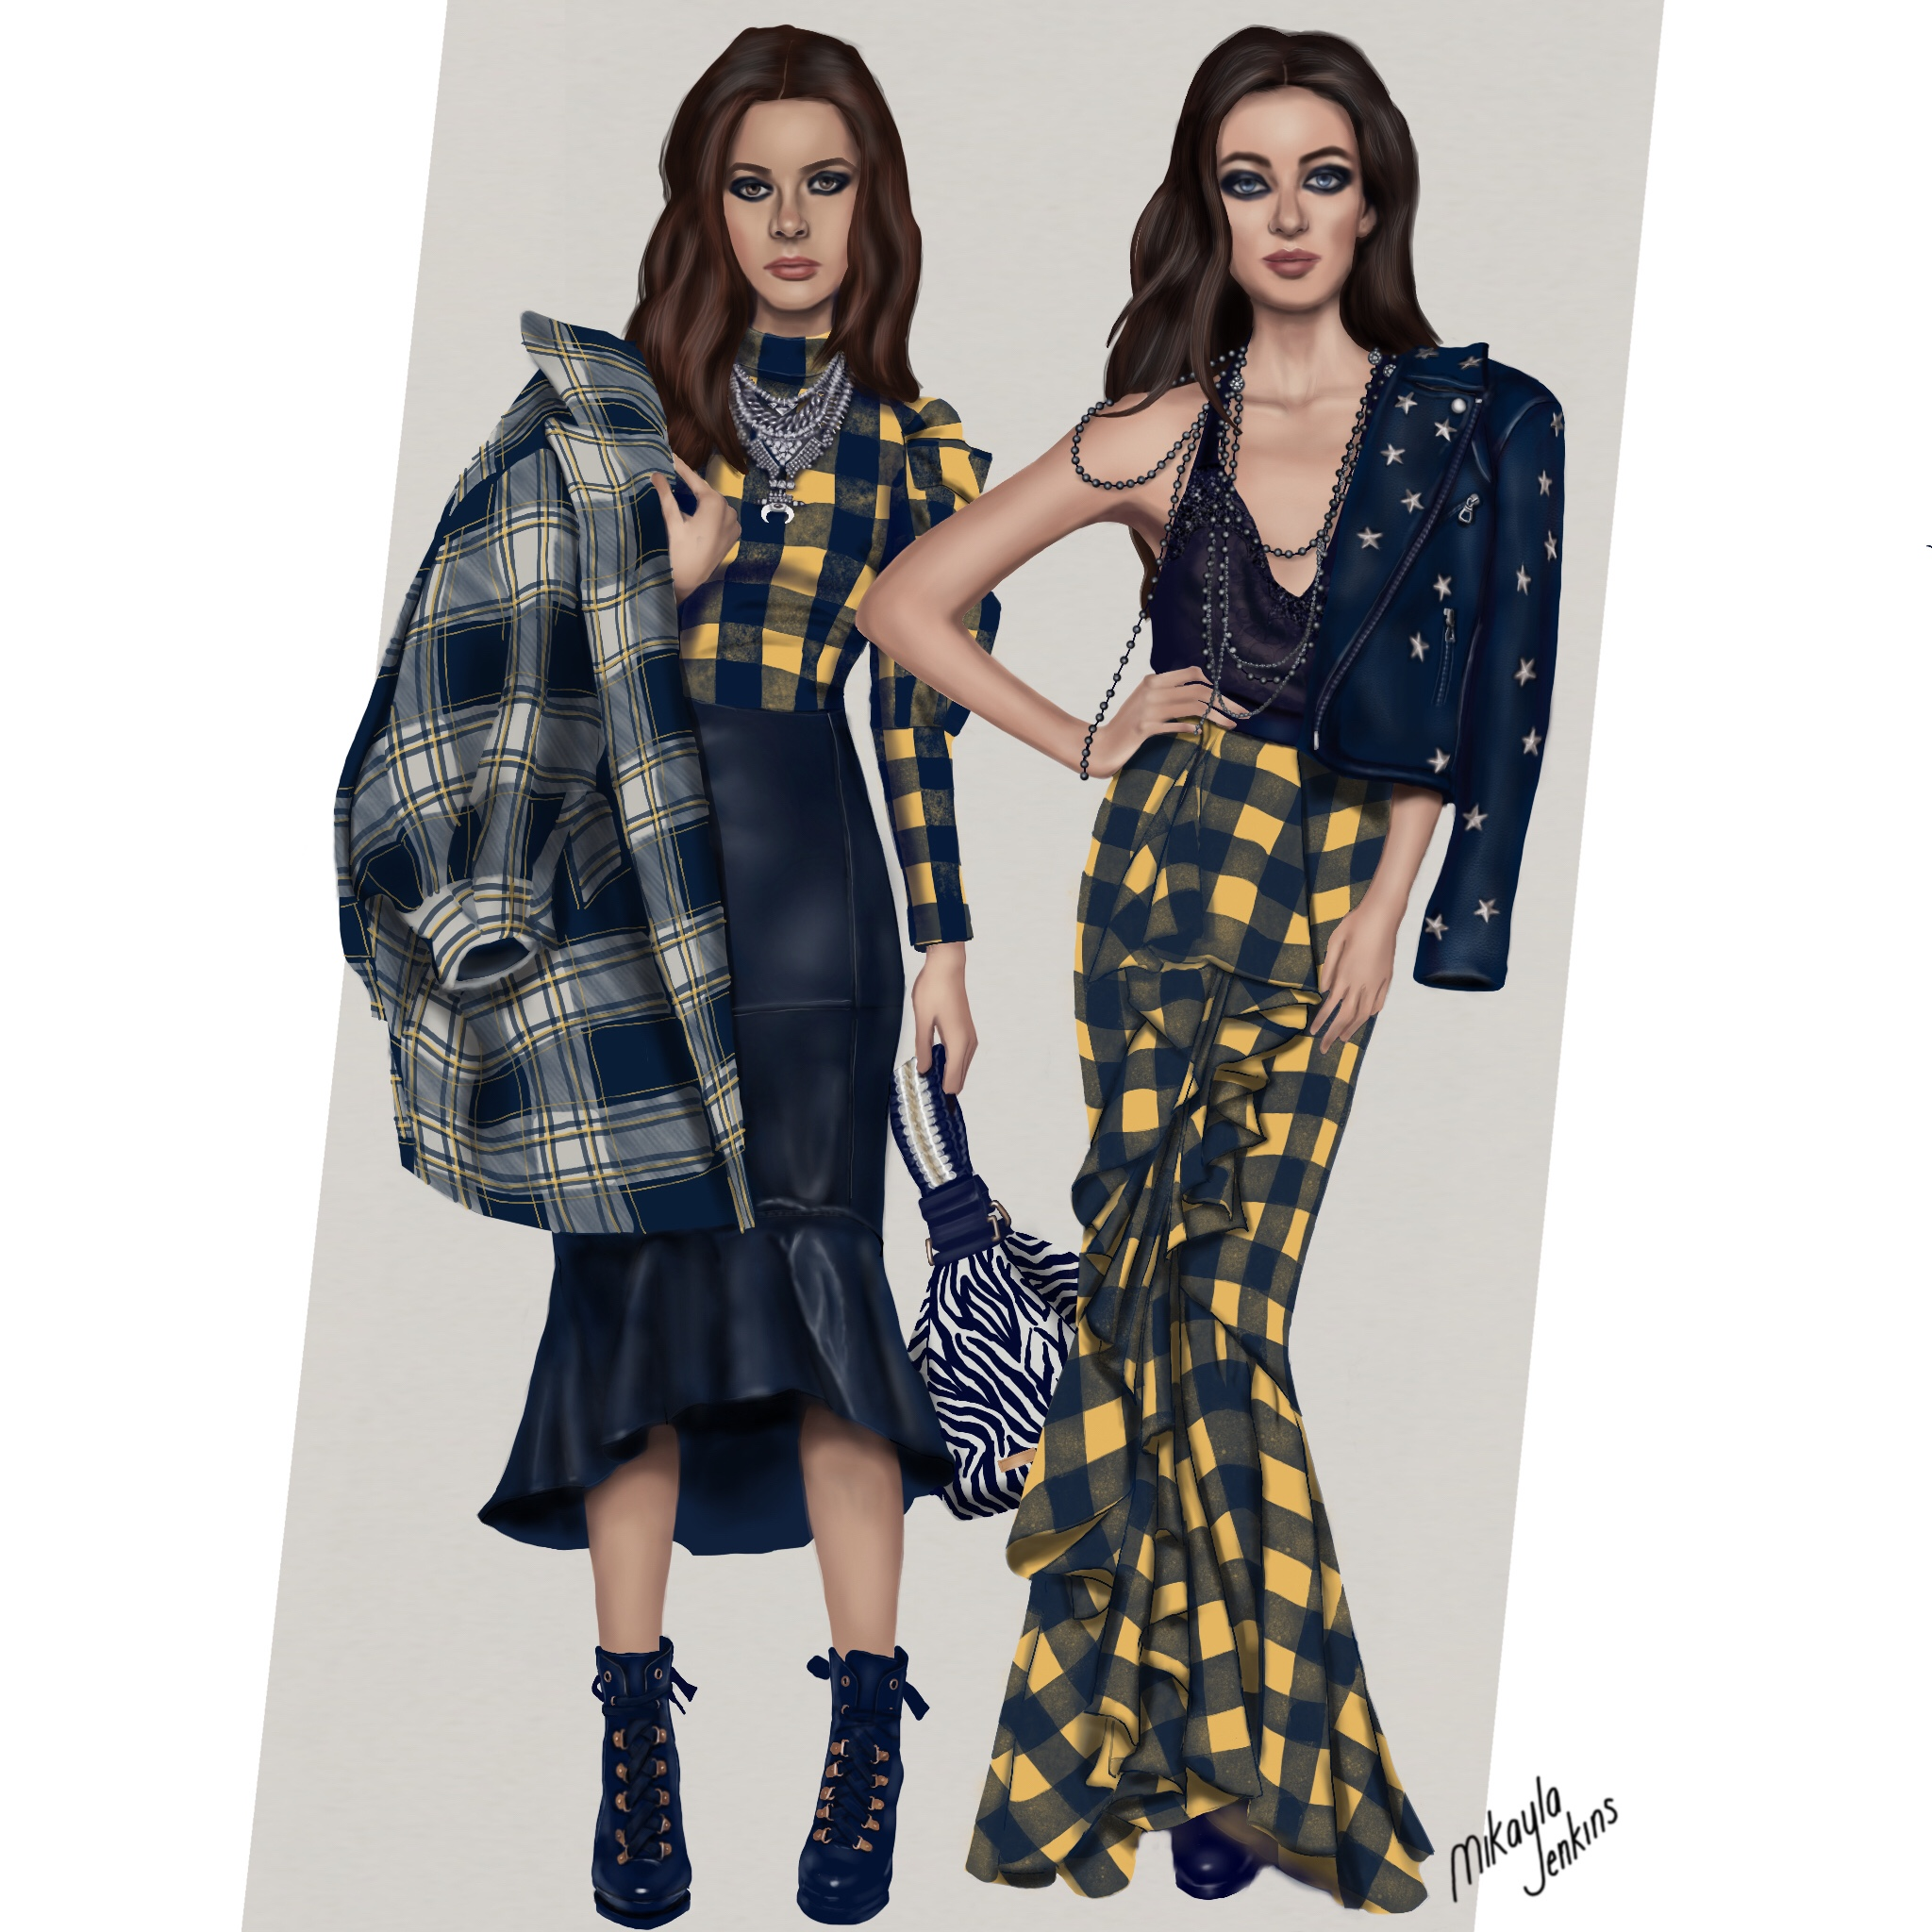 Alice + Olivia Fall 2018 - Sublime Cravings Illustration